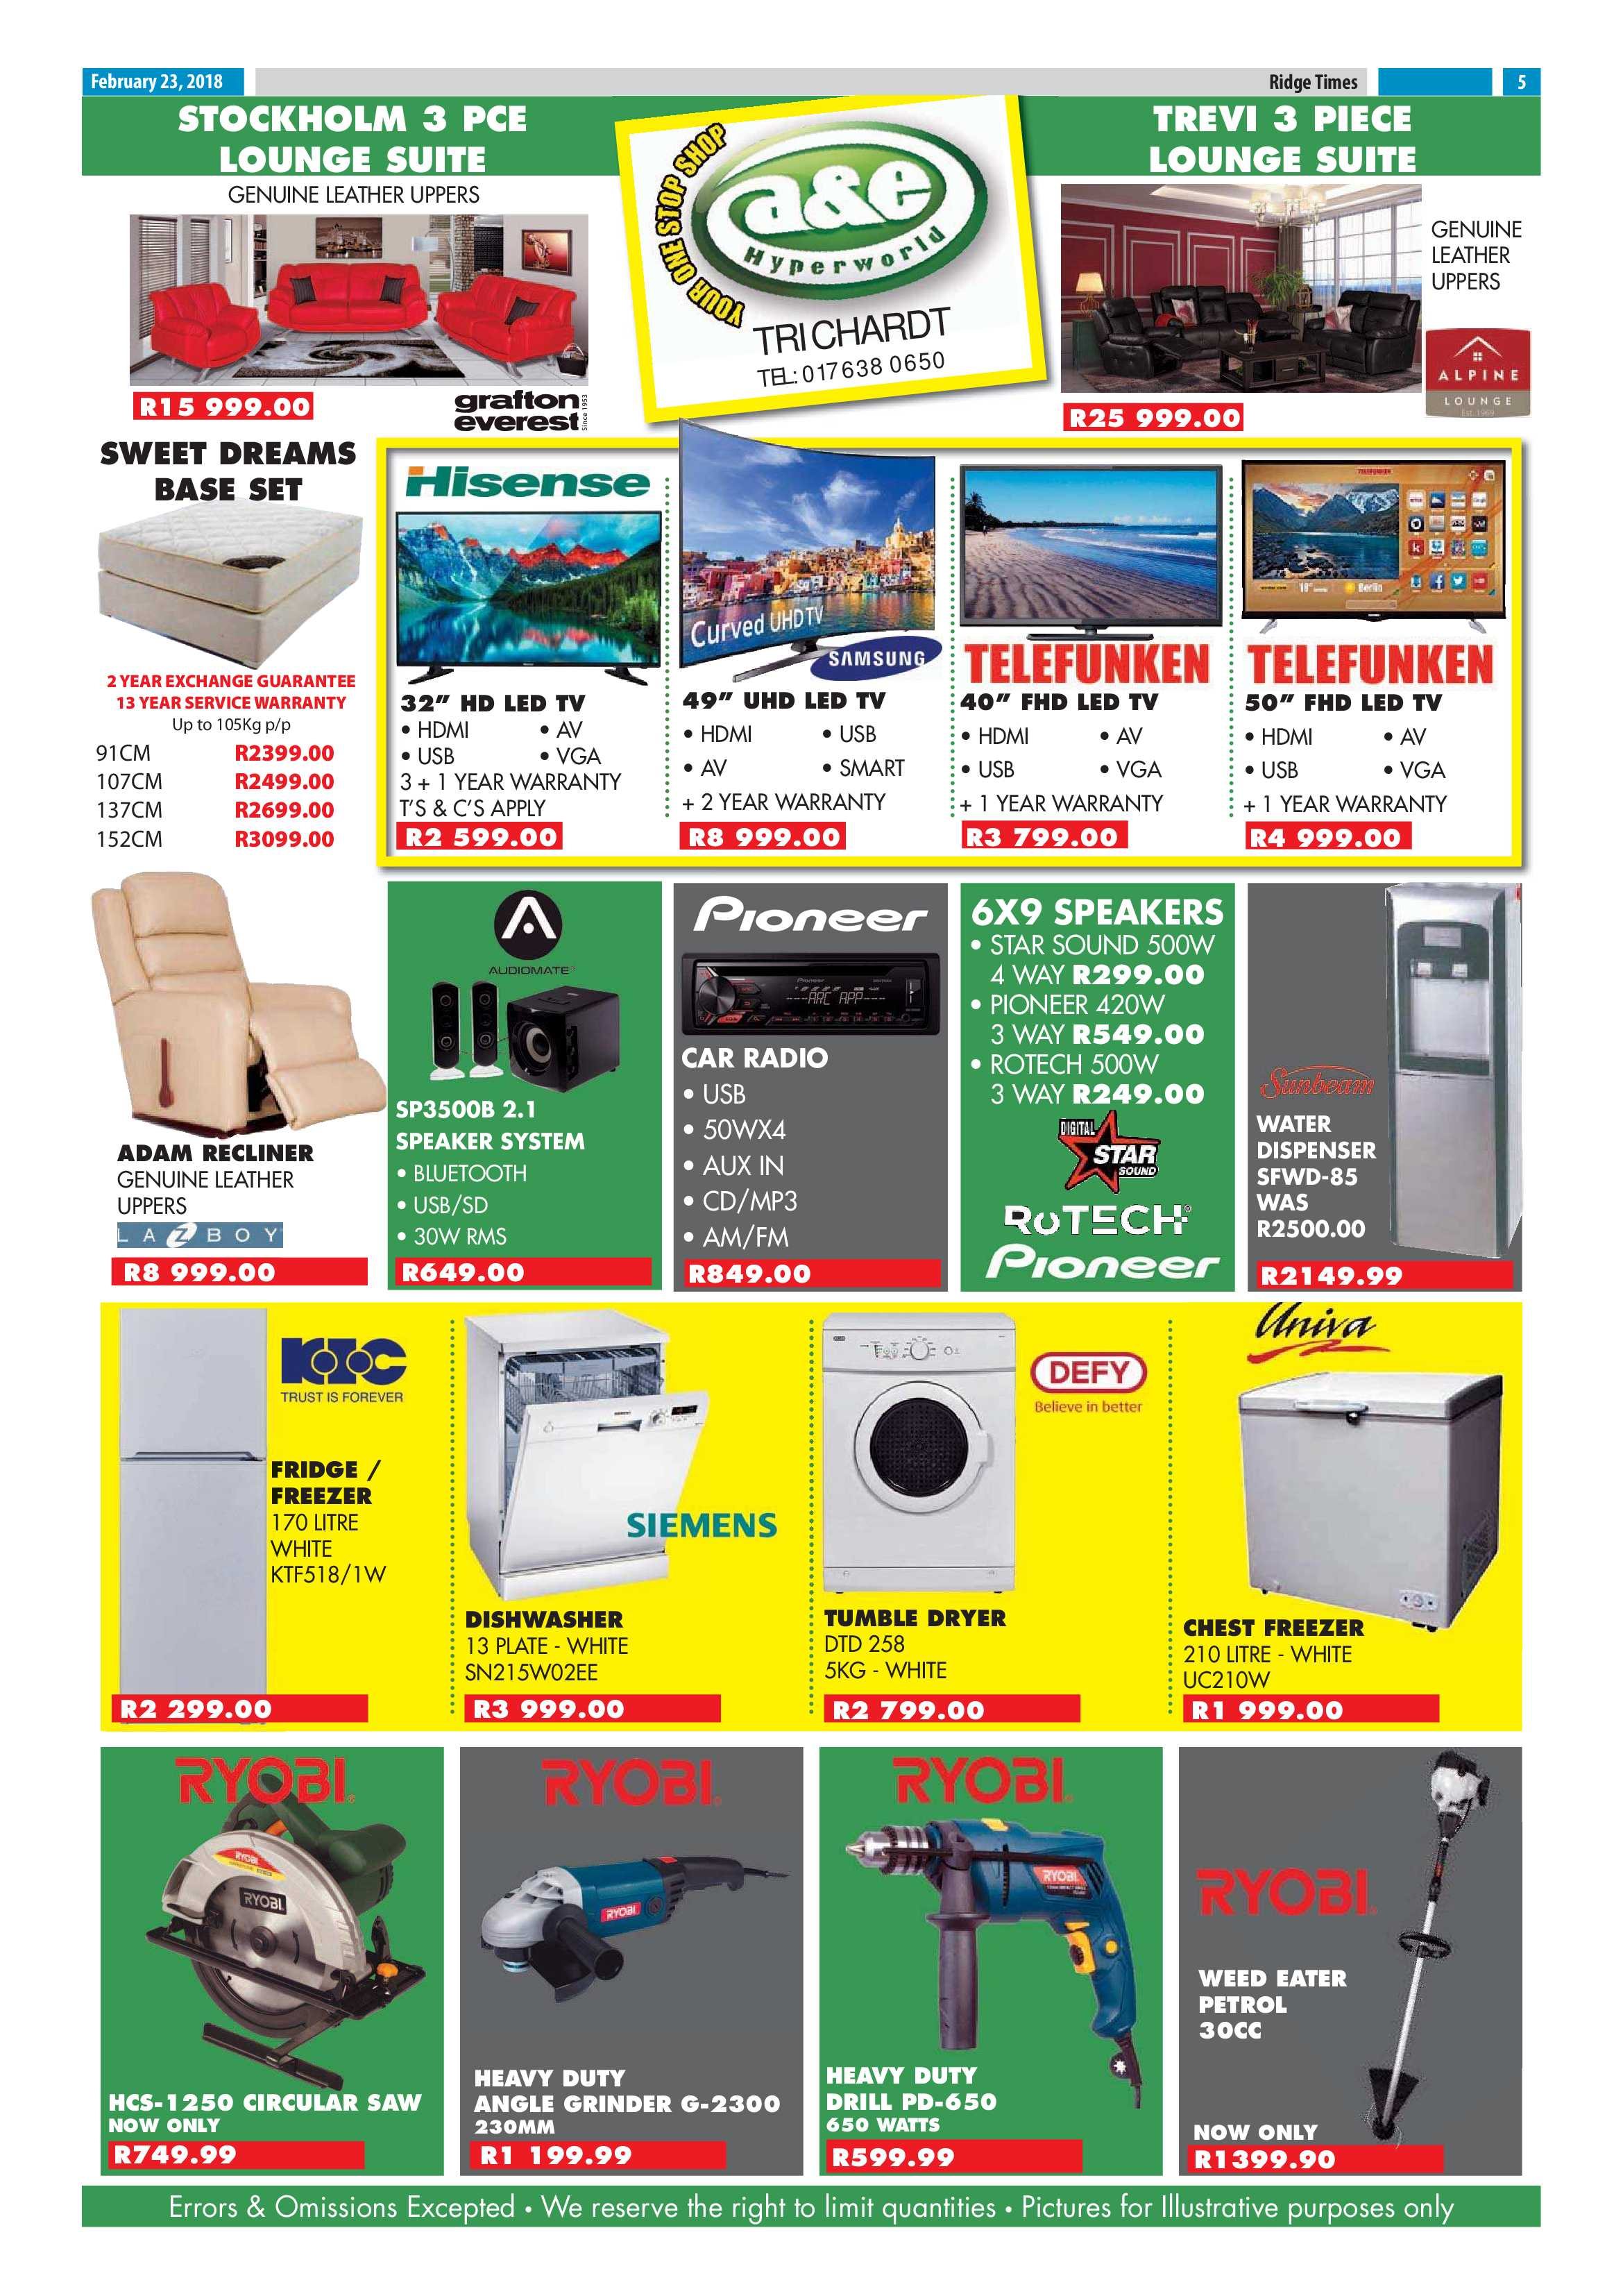 ridge-times-23-february-2018-epapers-page-5